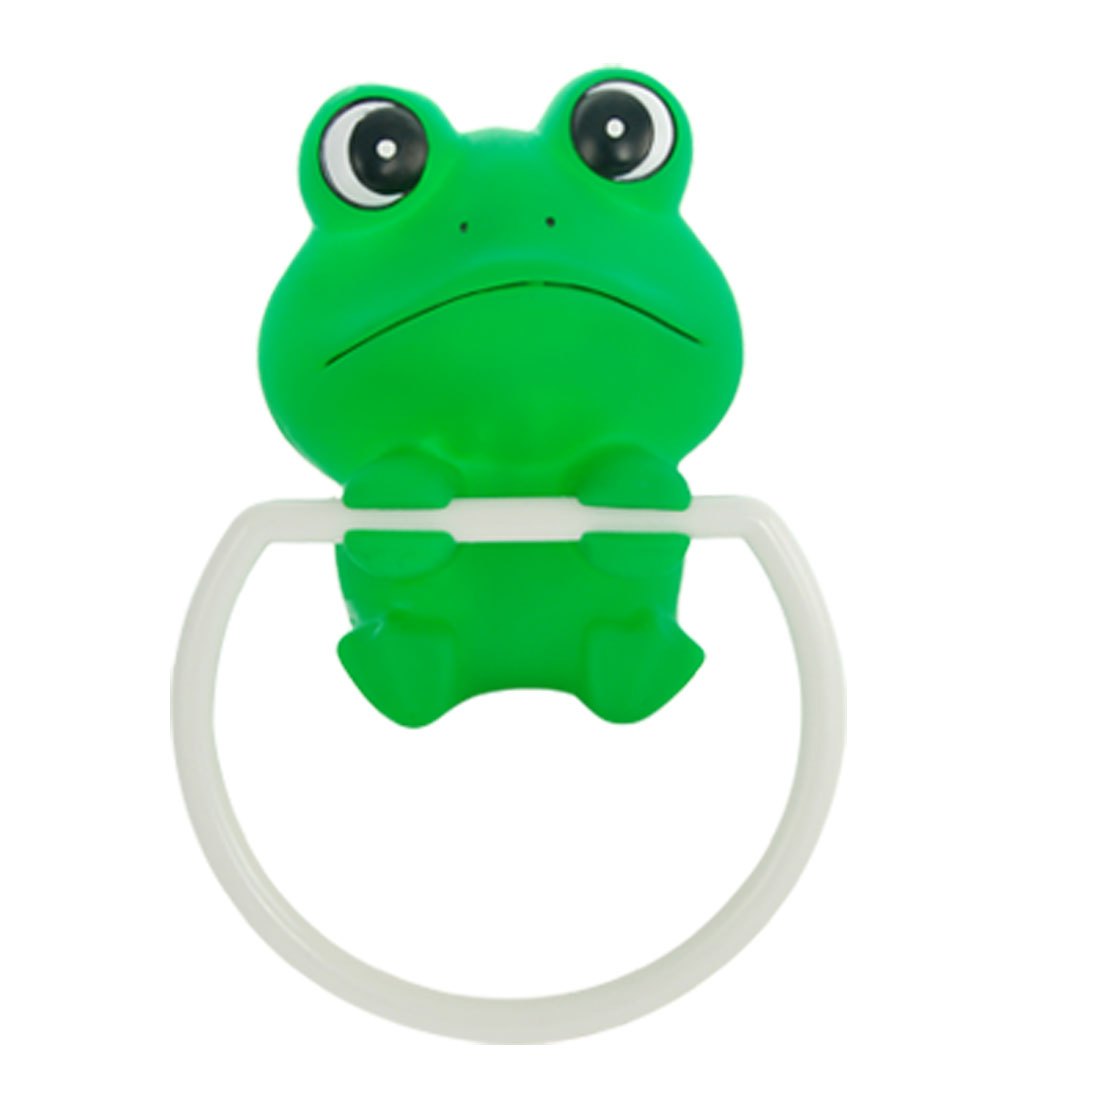 Cartoon Frog Shape Plastic Towel Hanger Bar Ring Holder Green